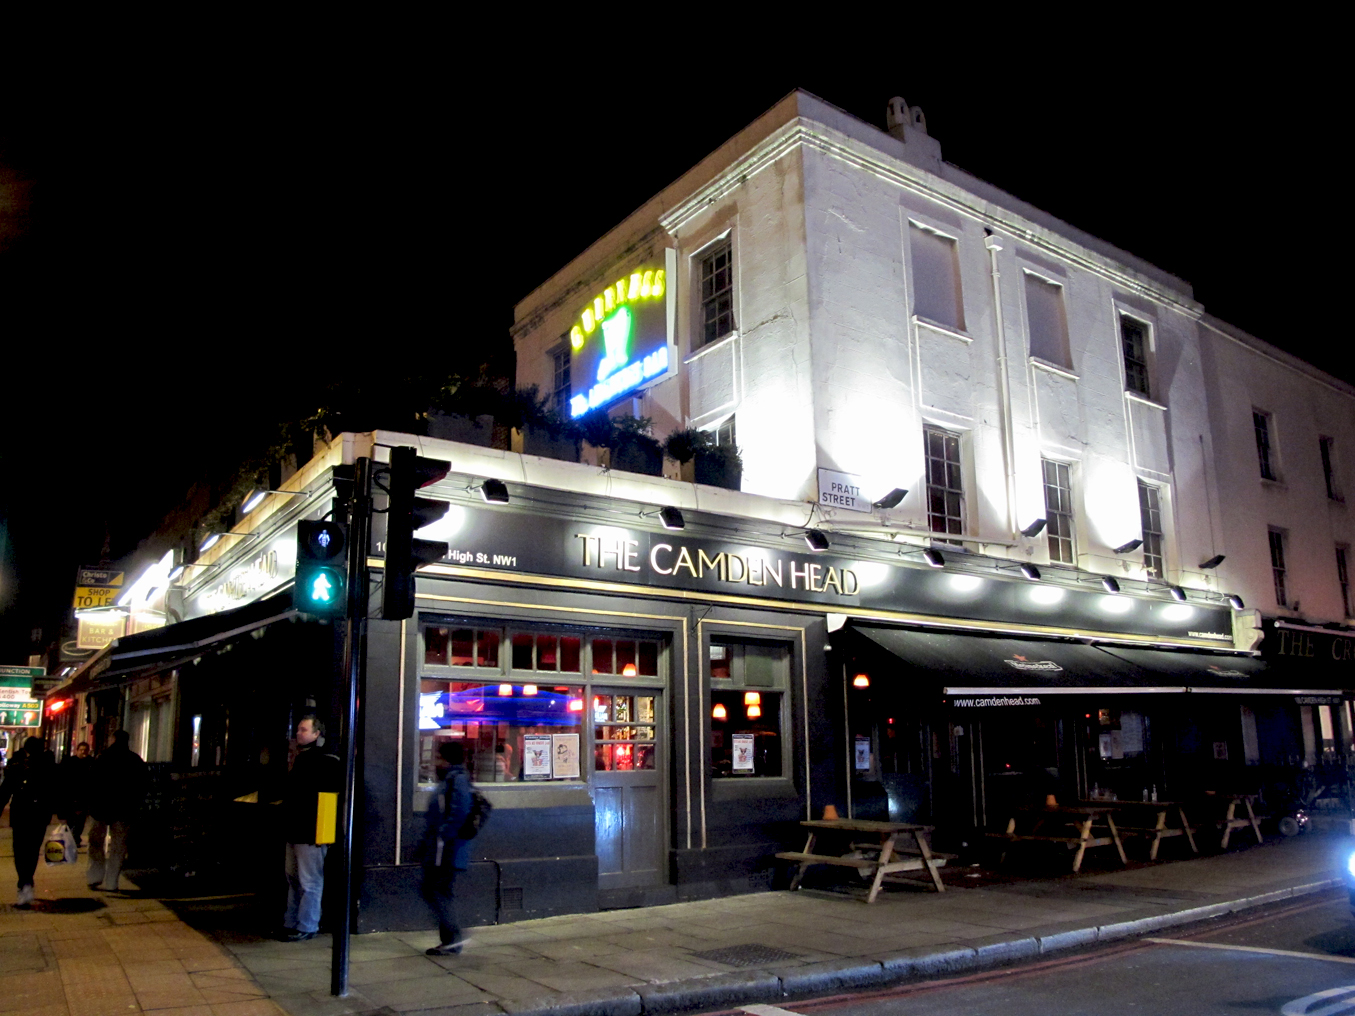 Rich Harrill's London and Wales: Camden Nights